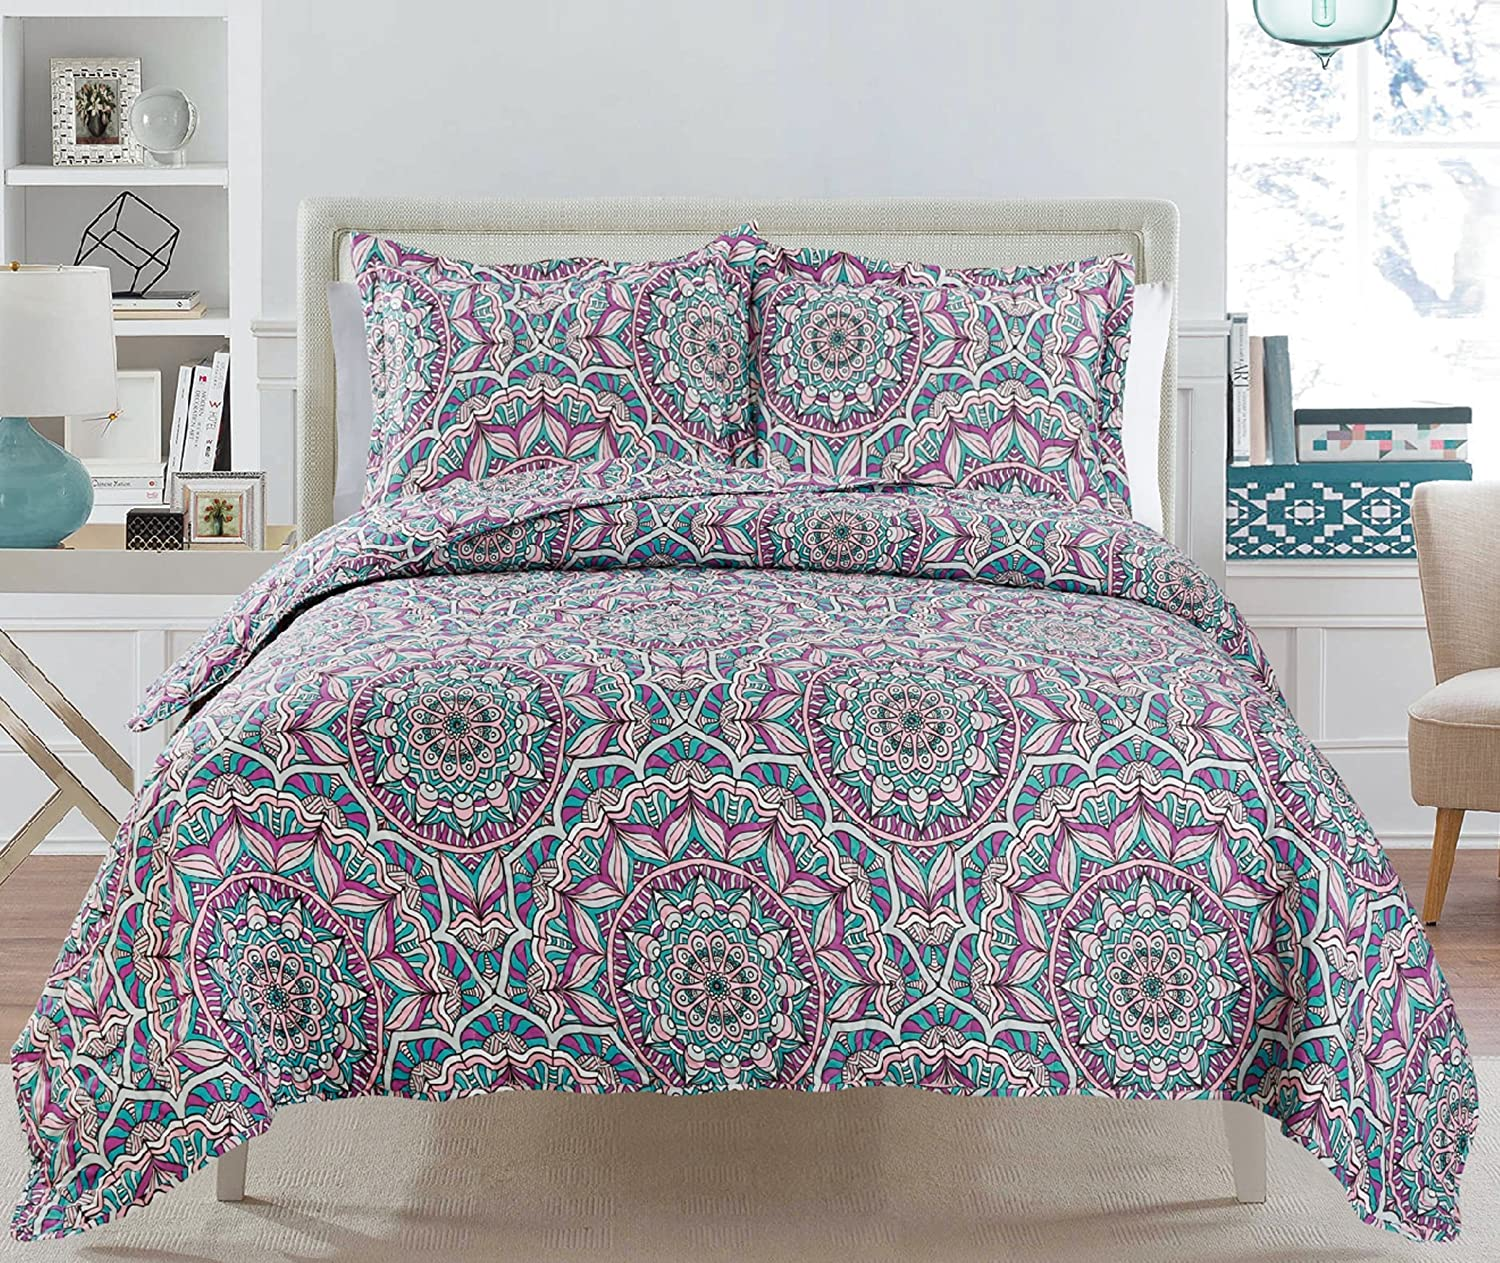 3 Piece Quilt Set Bedspread Set King Reversible Suri Love BRIA Quilt Collection